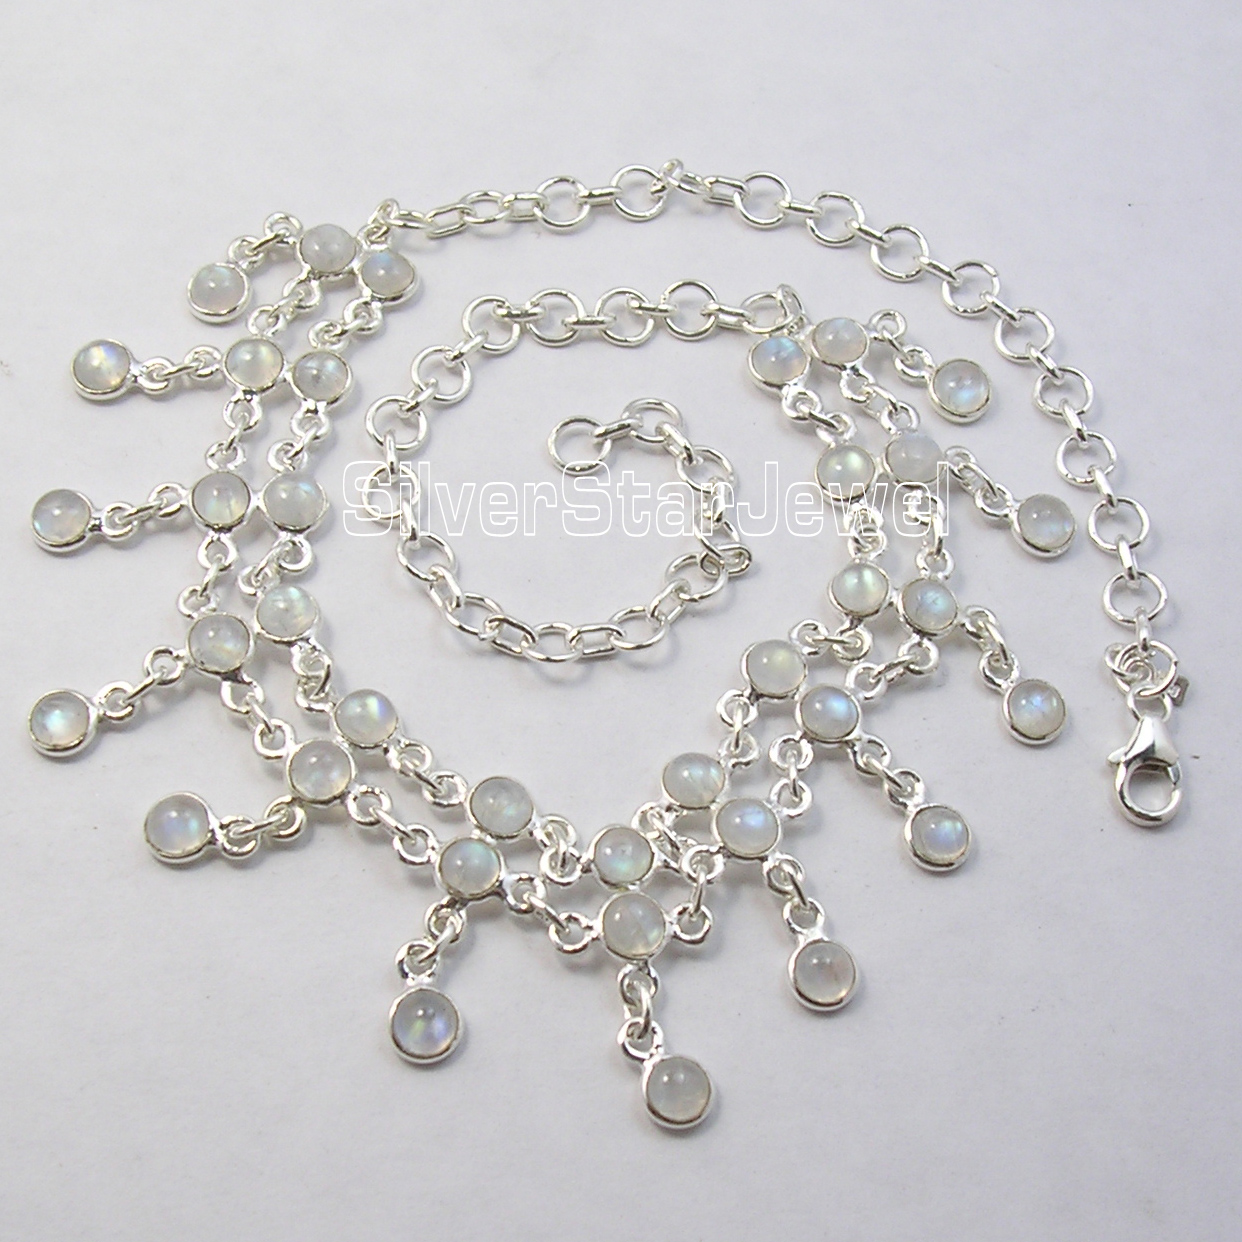 Cari International Solide Argent RAINBOW MOONSTONE FEMMES À LA MAIN Collier Ras Du Cou 16.5 Pouces